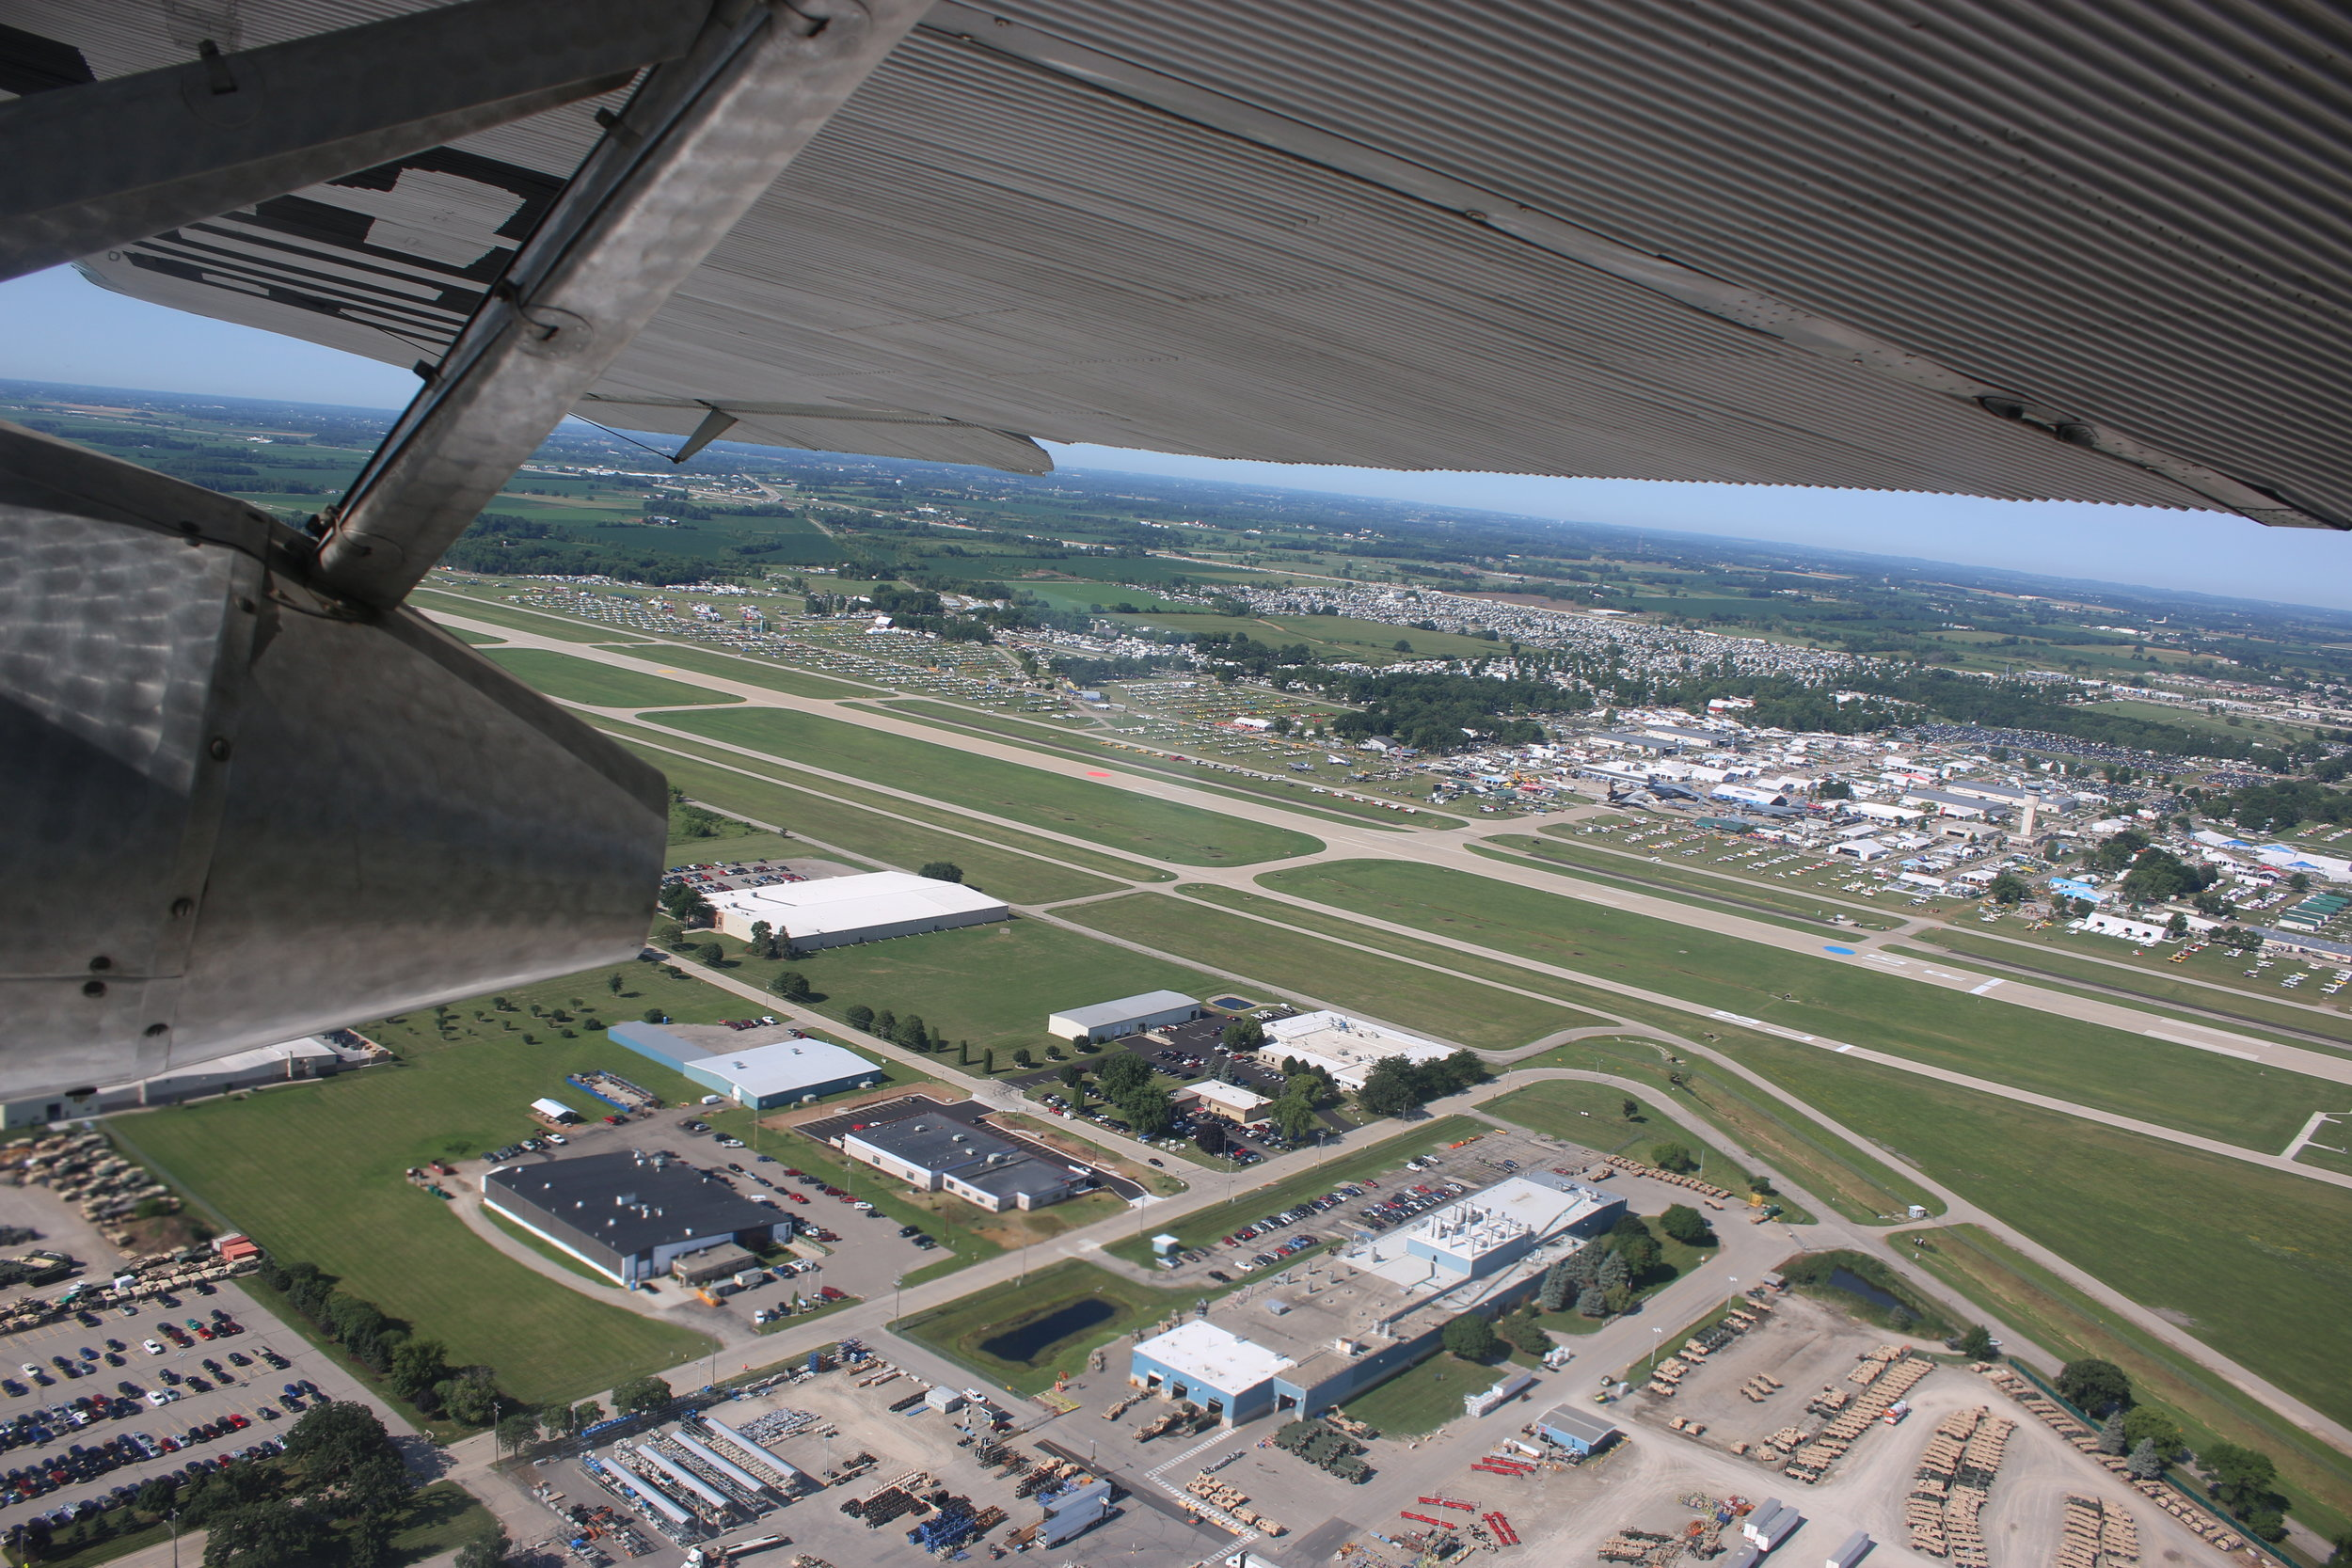 Oshkosh from the air taken 25th July 2018 by Alec Rankin